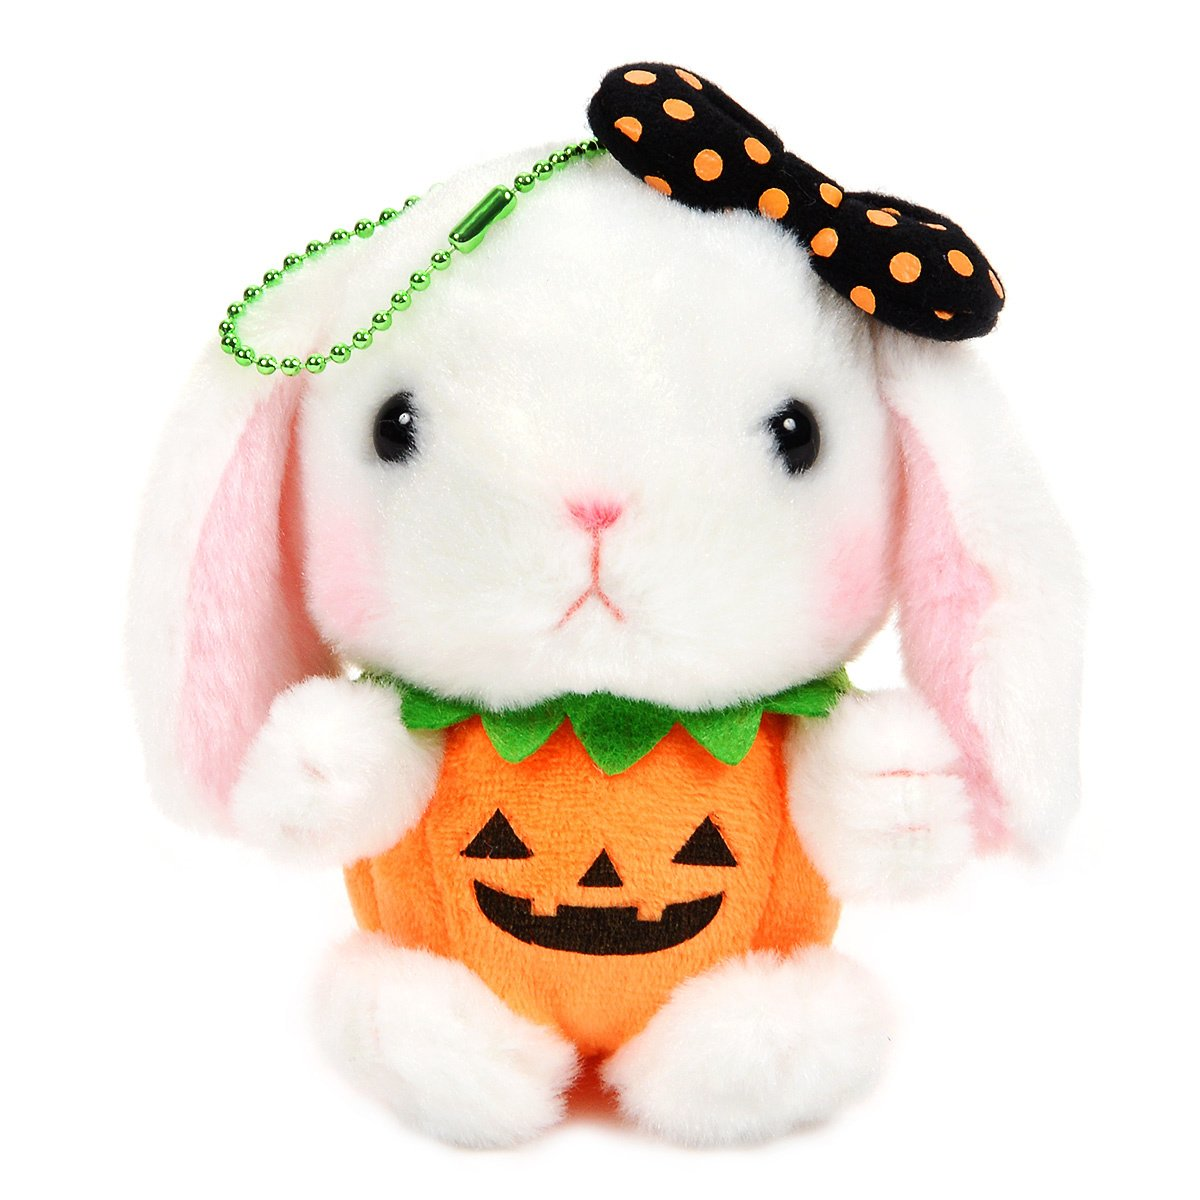 Amuse Halloween Bunny Plushie Cute Stuffed Animal Toy White 4 Inches